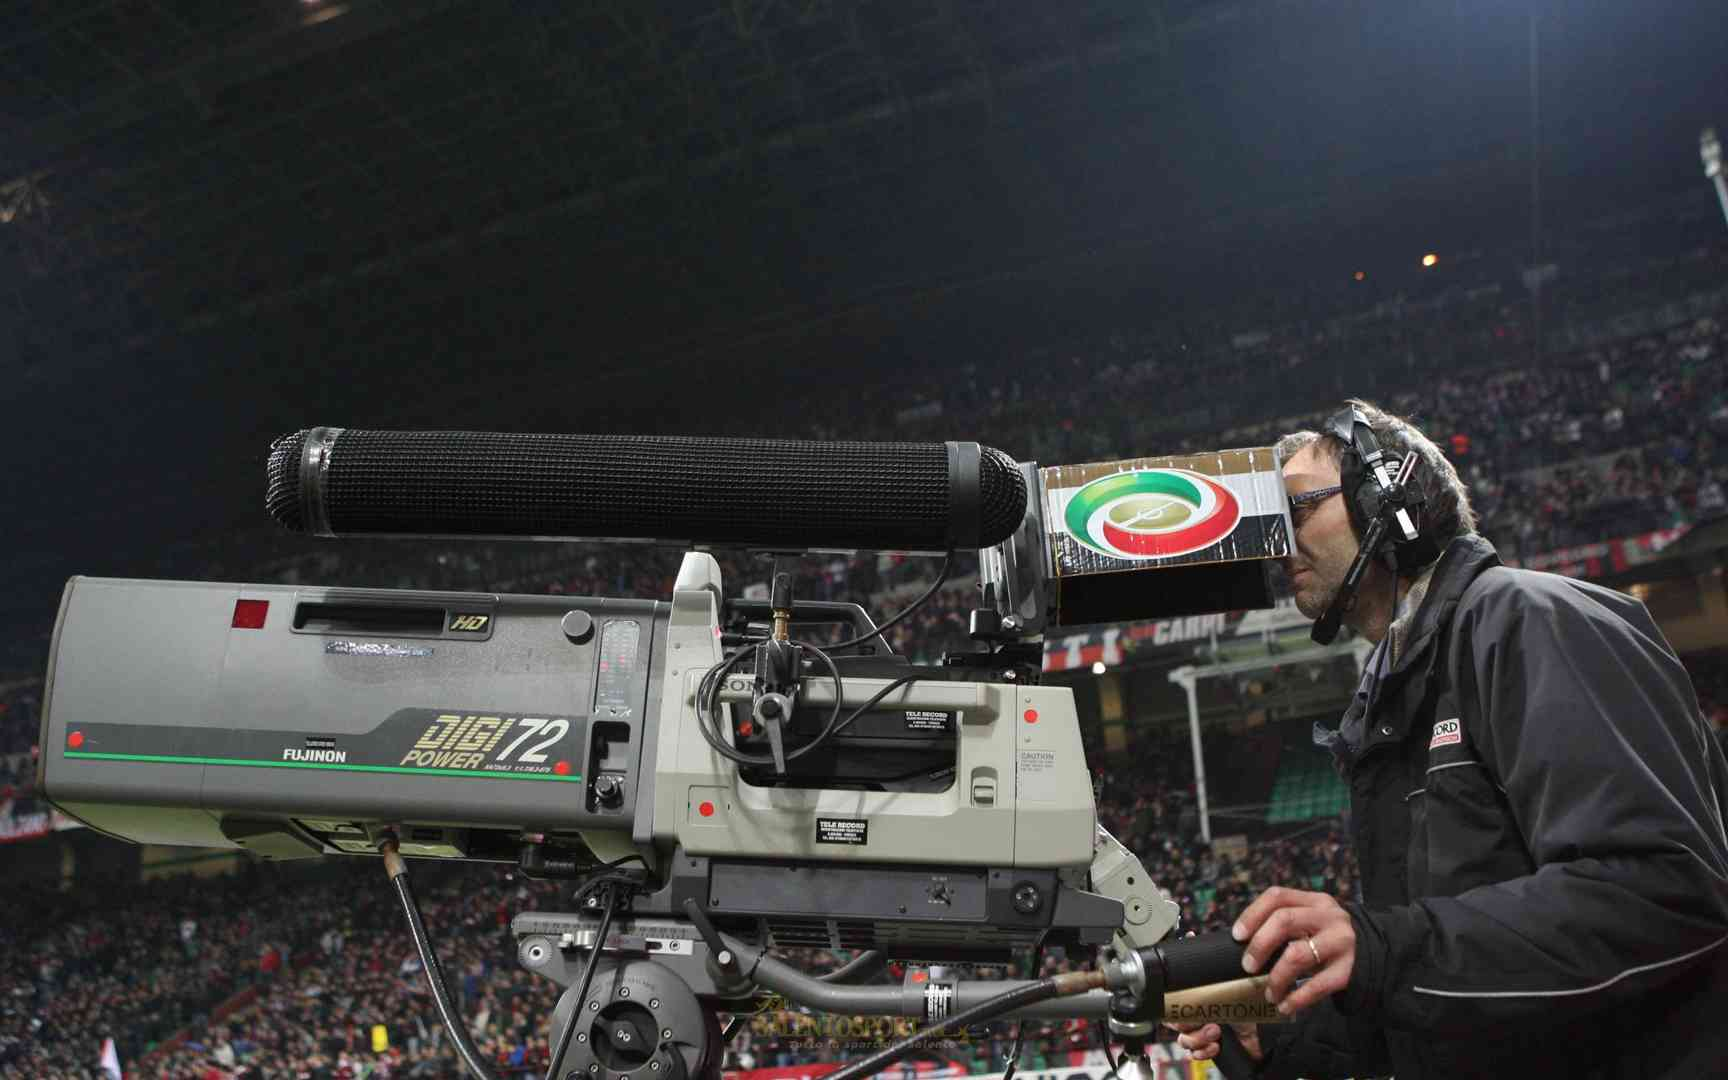 telecamera-stadio anticipi posticipi tv